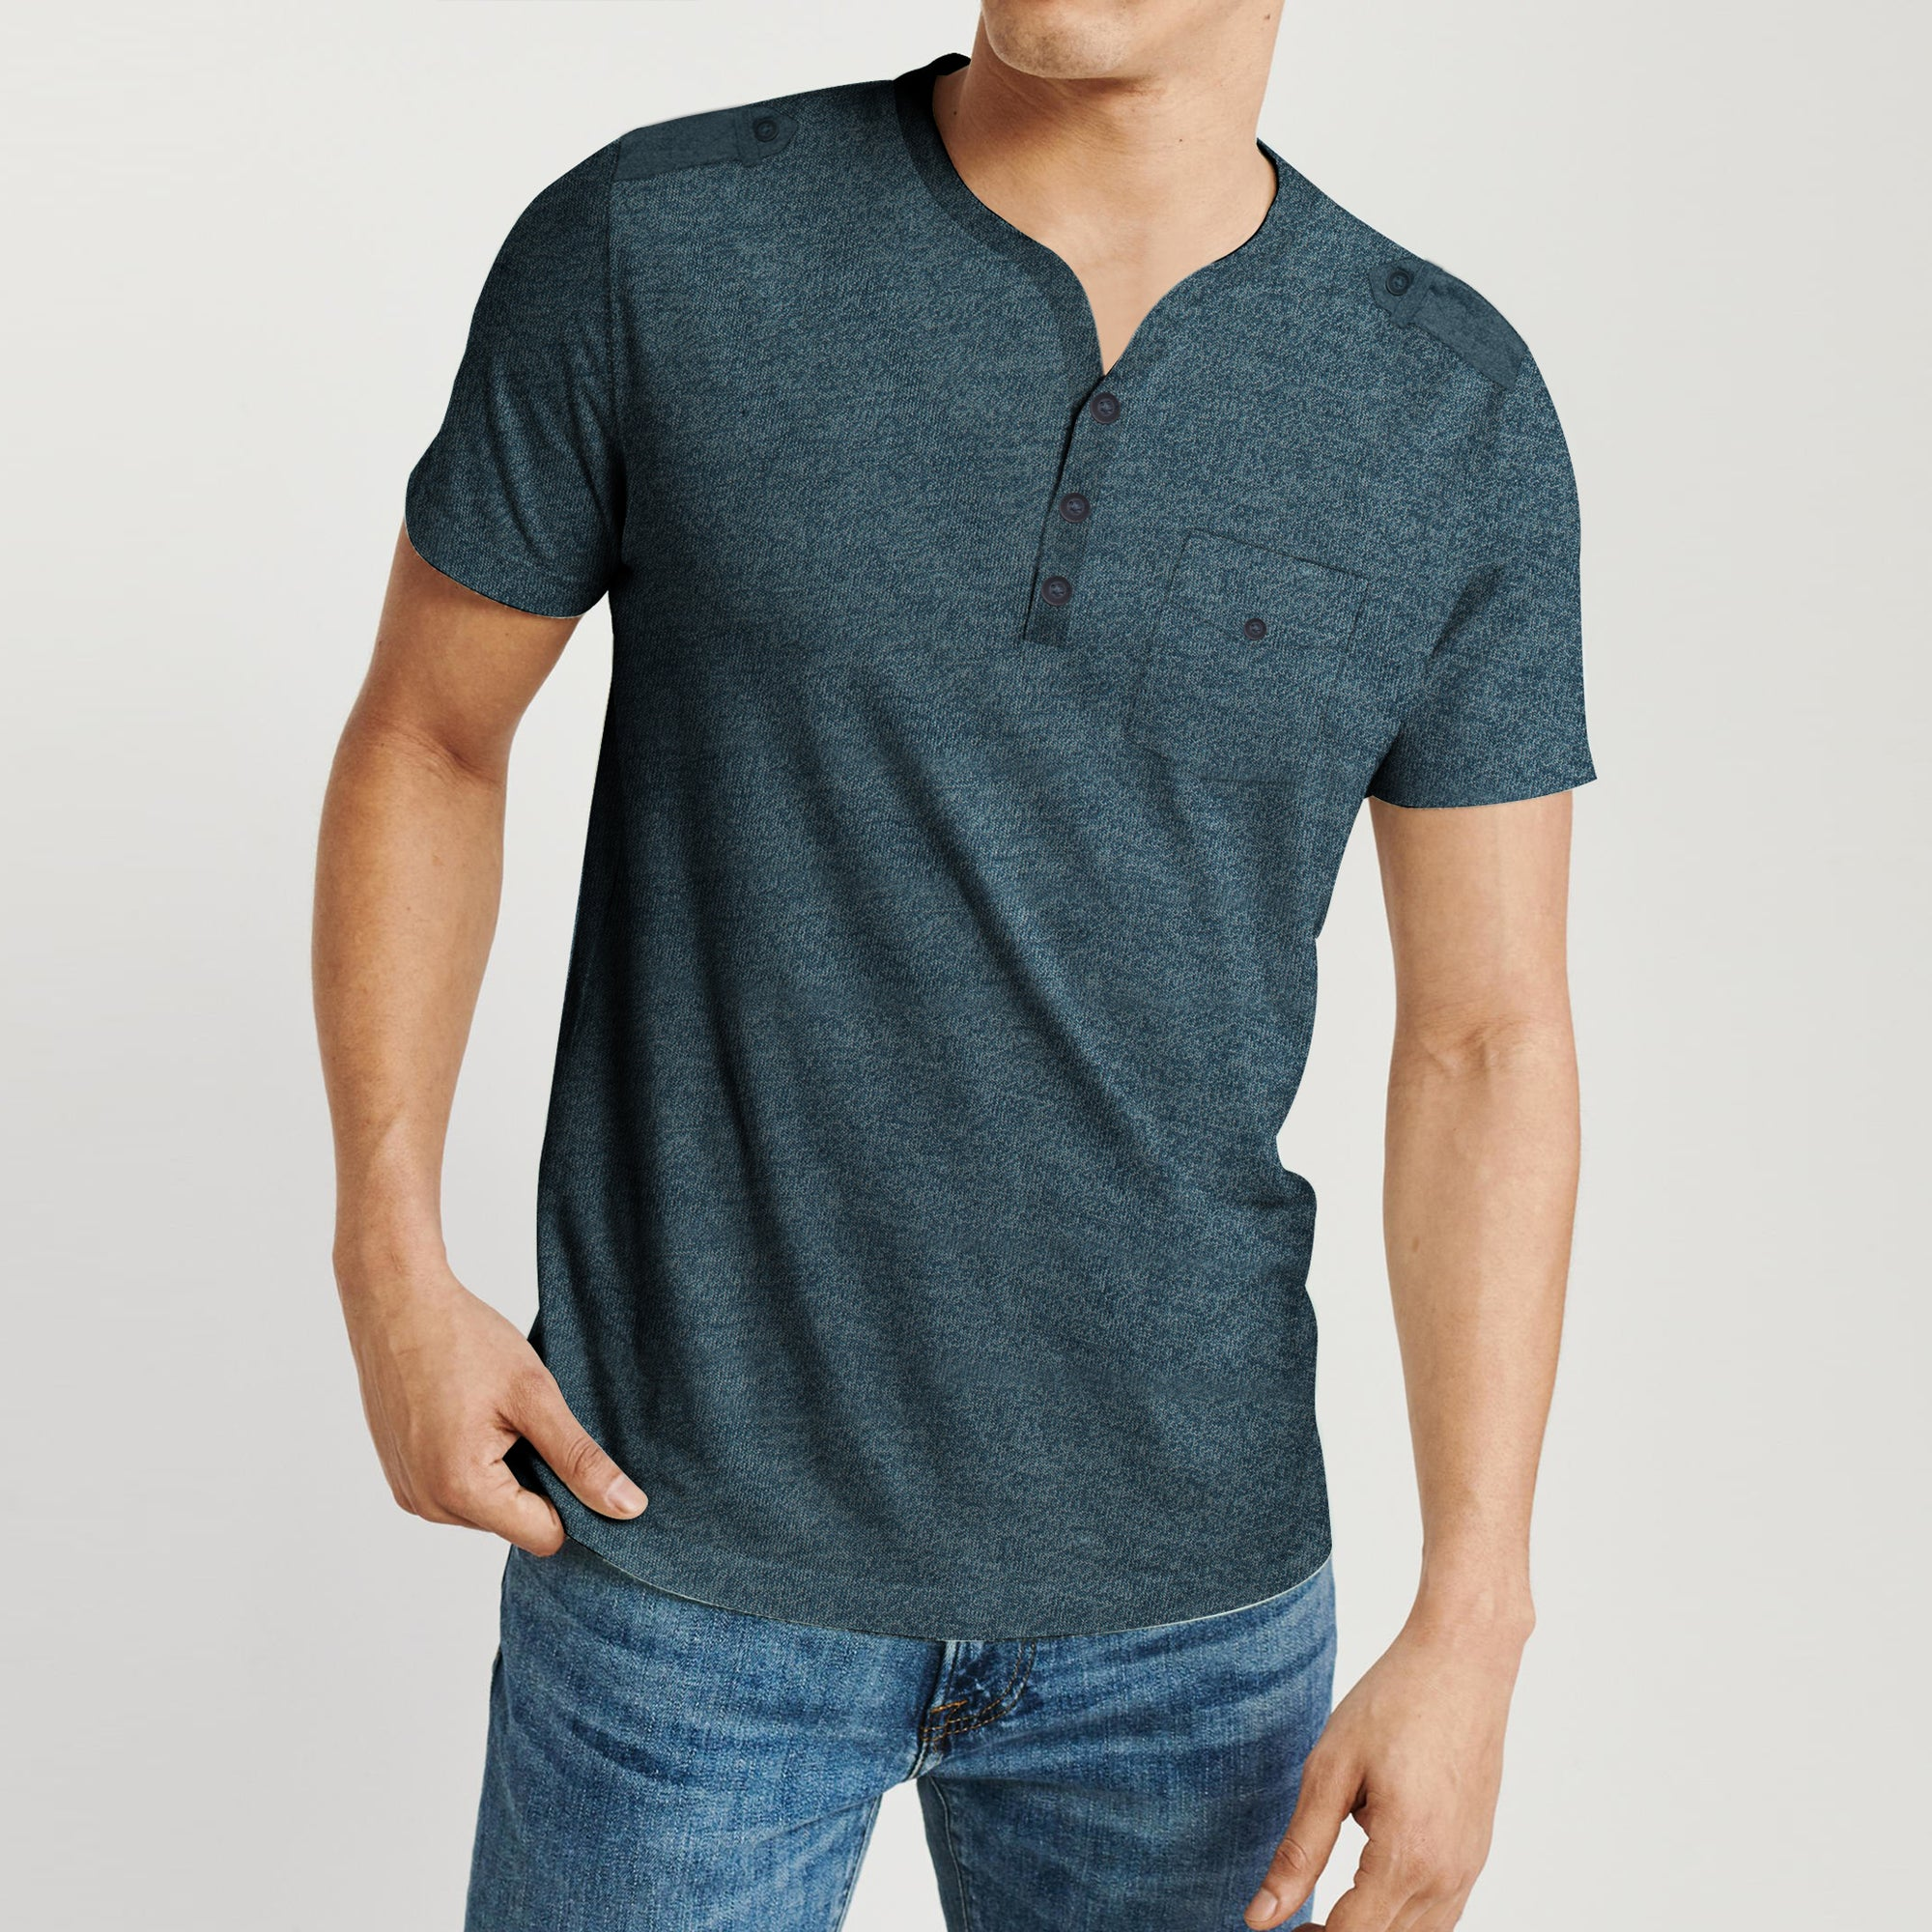 Beverly Hills V Neck Half Sleeve Tee Shirt For Men-BE8277